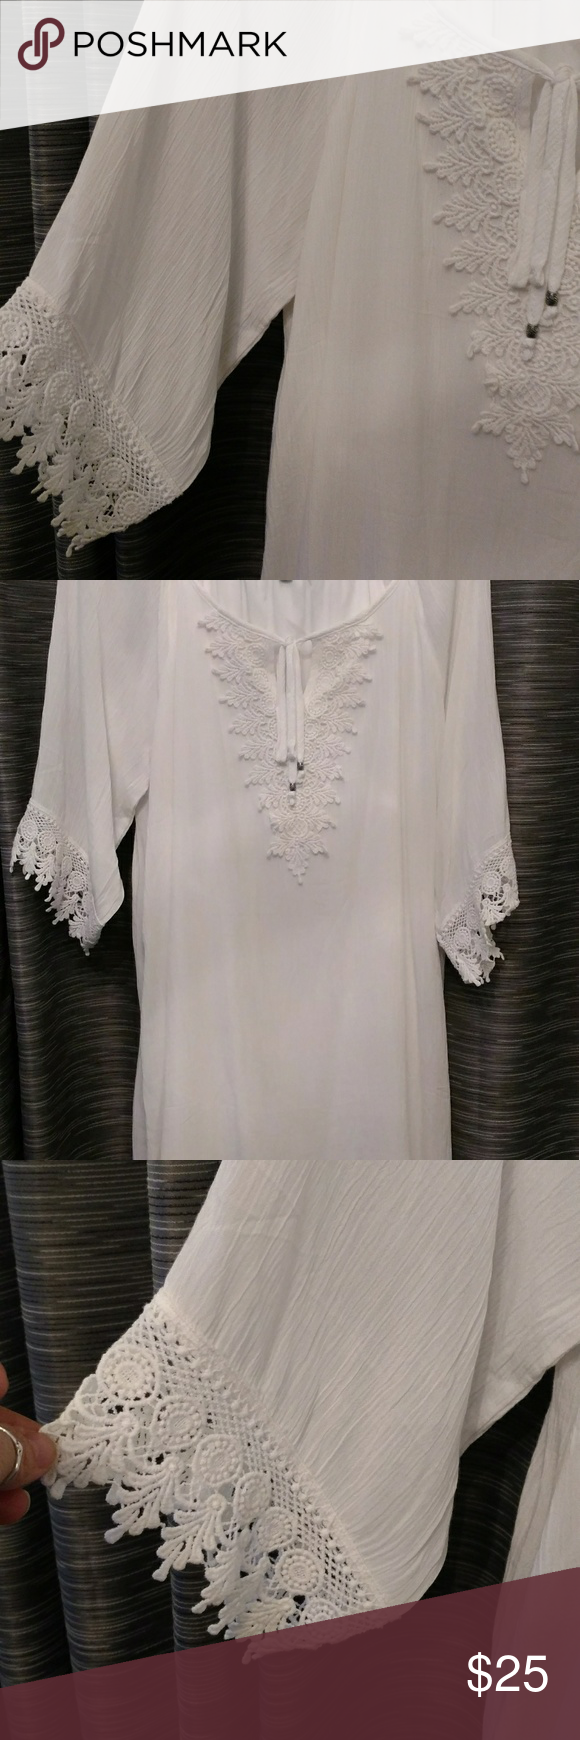 Naif Dress Beautiful material and cut with an under pinning of a soft layer, white flowy dress or cover-up. Never worn. Naif Dresses Midi